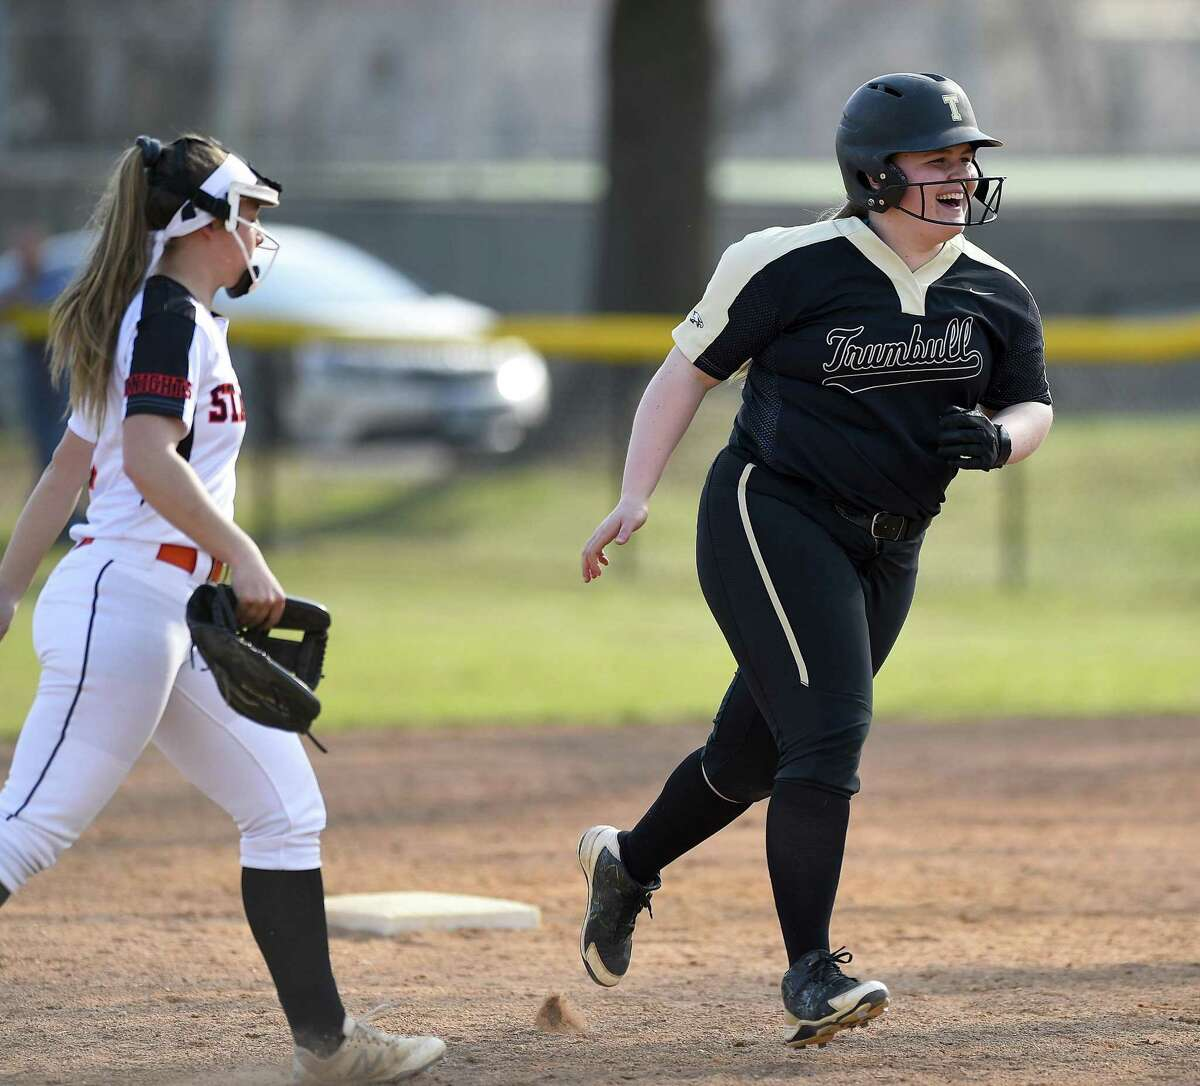 Trumbull's Delilha Destefano (25) rounds the bases following a three run homer in the third inning against Stamford at a FCIAC girls softball game at Stamford High School in Stamford, Connecticut on April 13, 2018. Trumbull defeated Stamford 5-1.